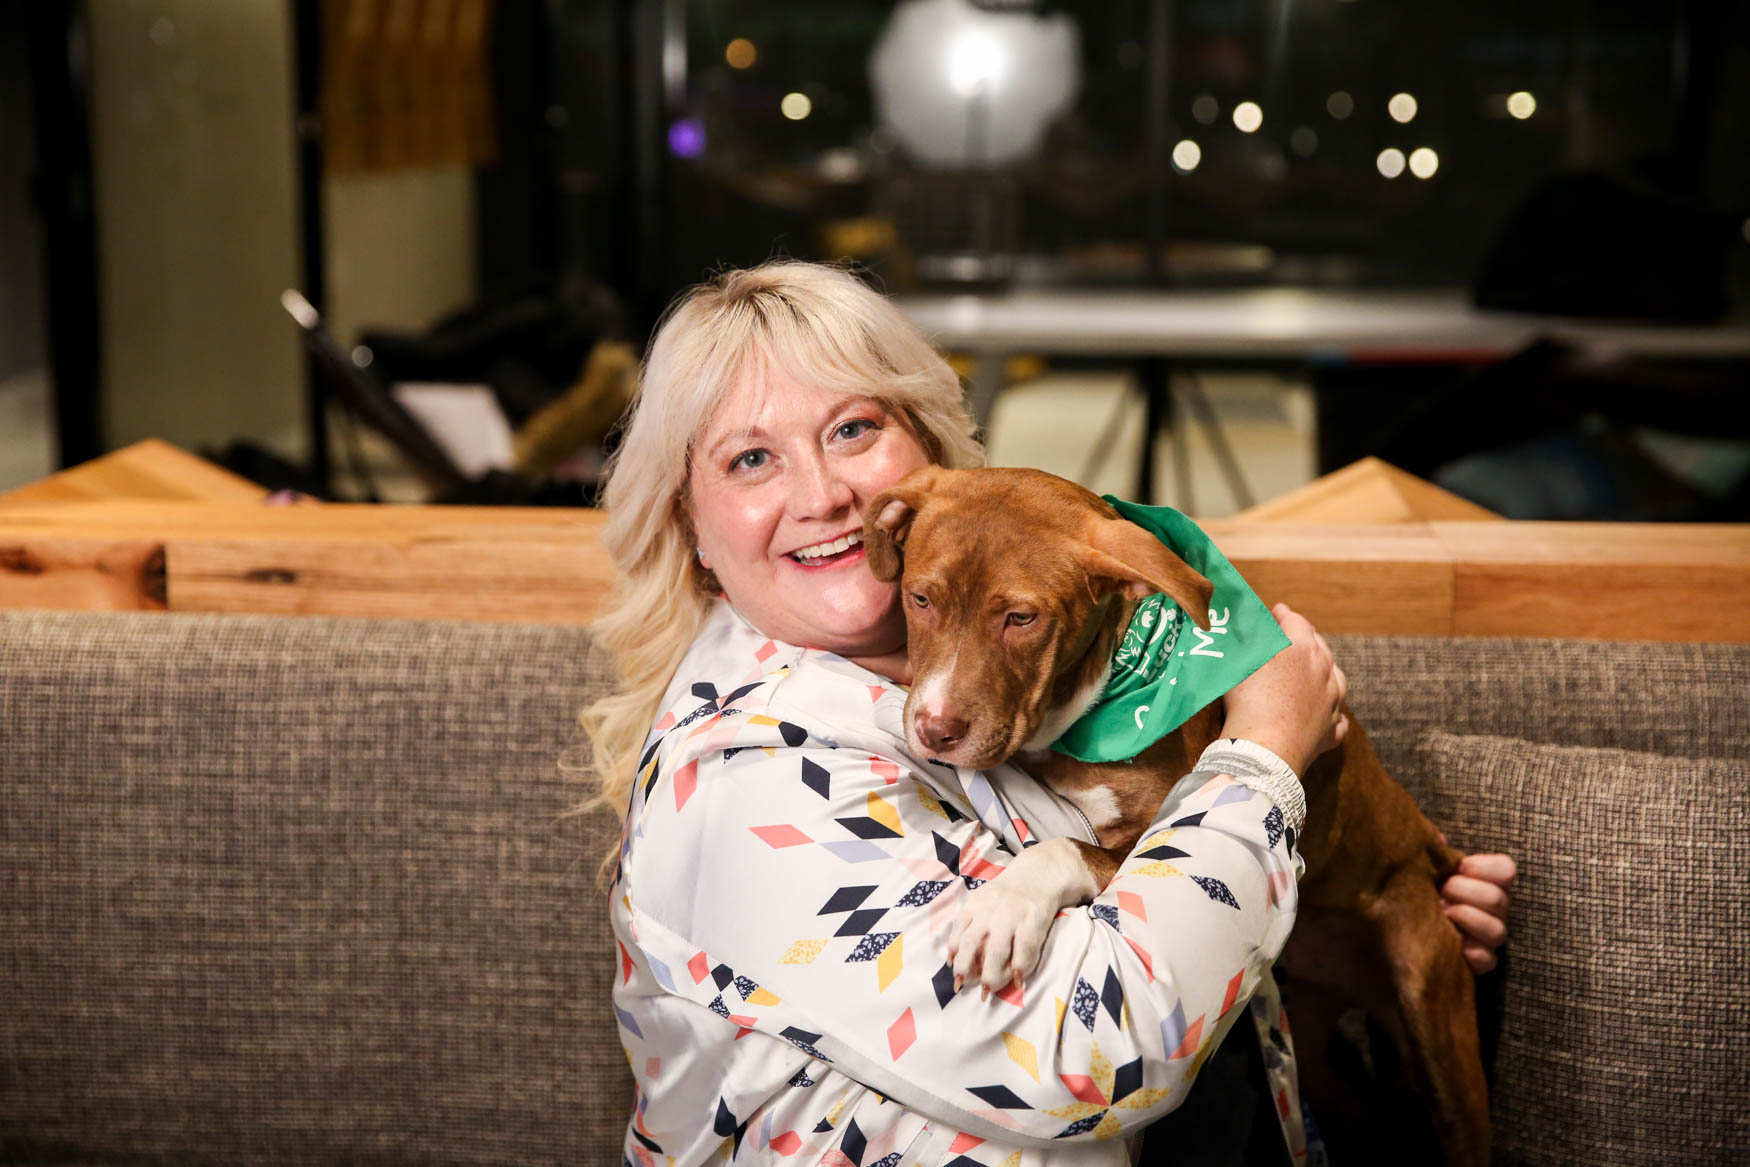 Meet Uncle and Tennille, a 5-month-old Terrier mix and a 38-year-old human respectively.{ } Photo location: Moxy Washington, D.C. Downtown (Image: Amanda Andrade-Rhoades/ DC Refined)